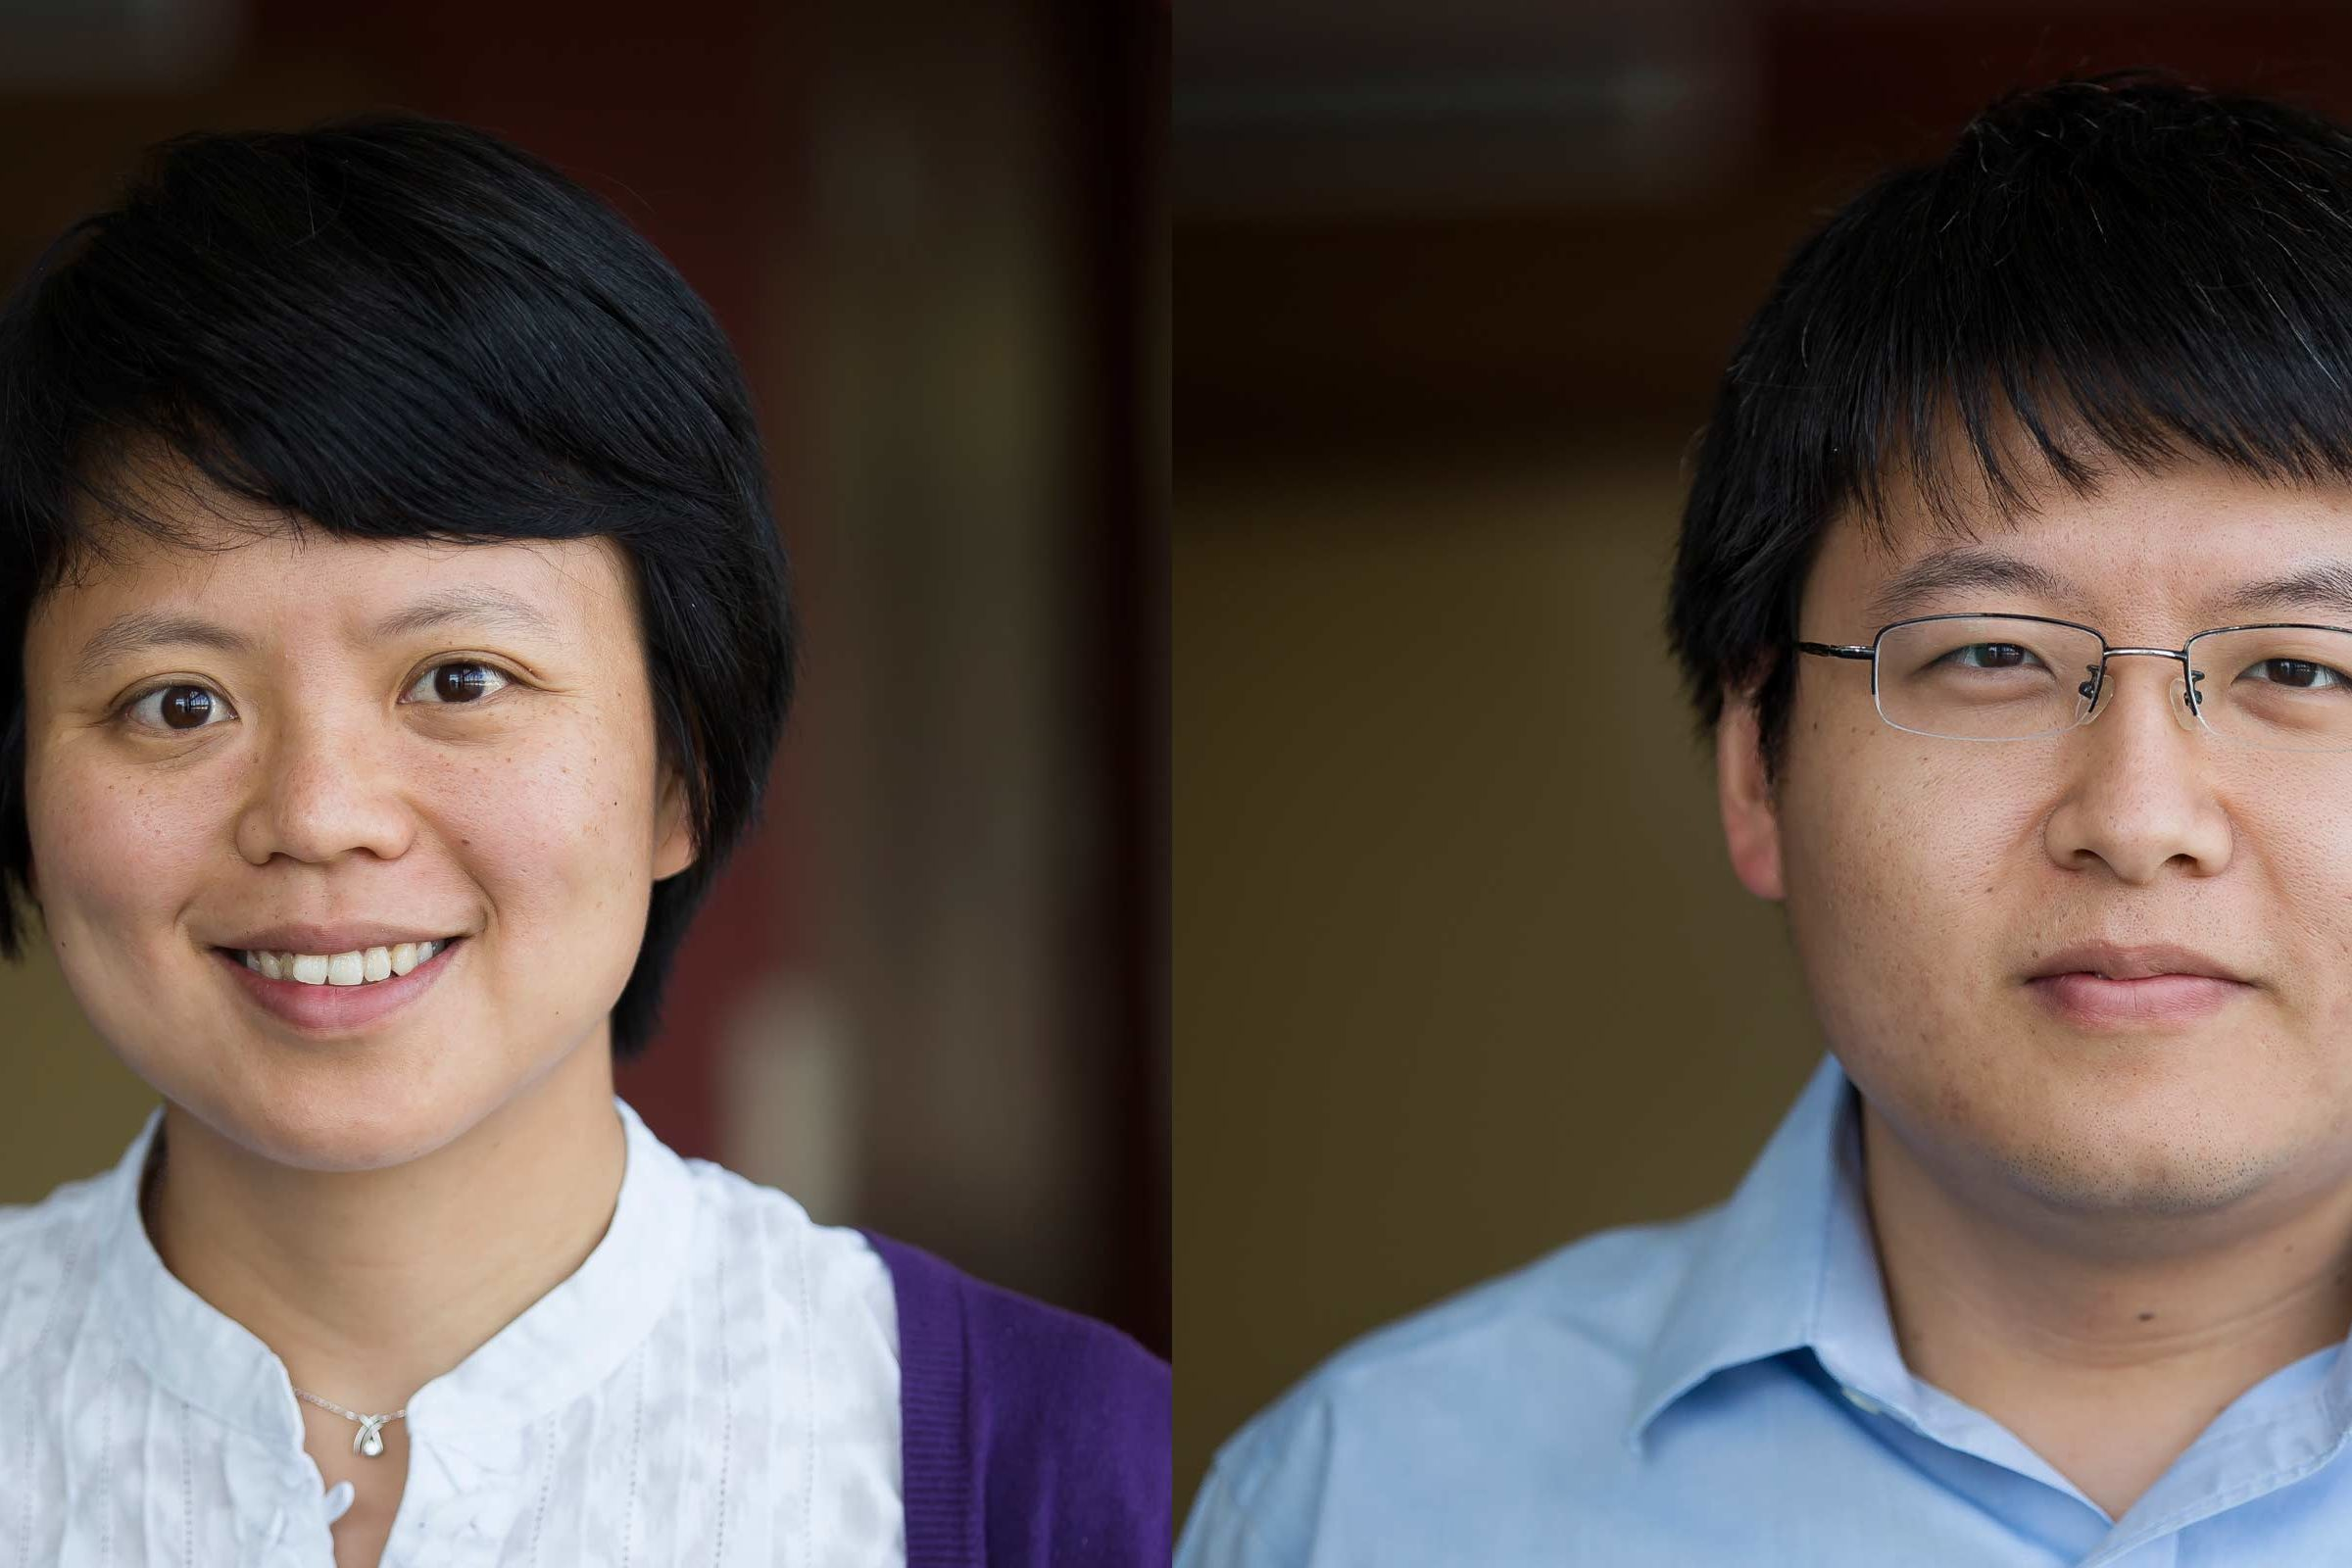 Professors Siqian Shen and Ruiwei Jiang. Photos by Joseph Xu, Michigan Engineering.